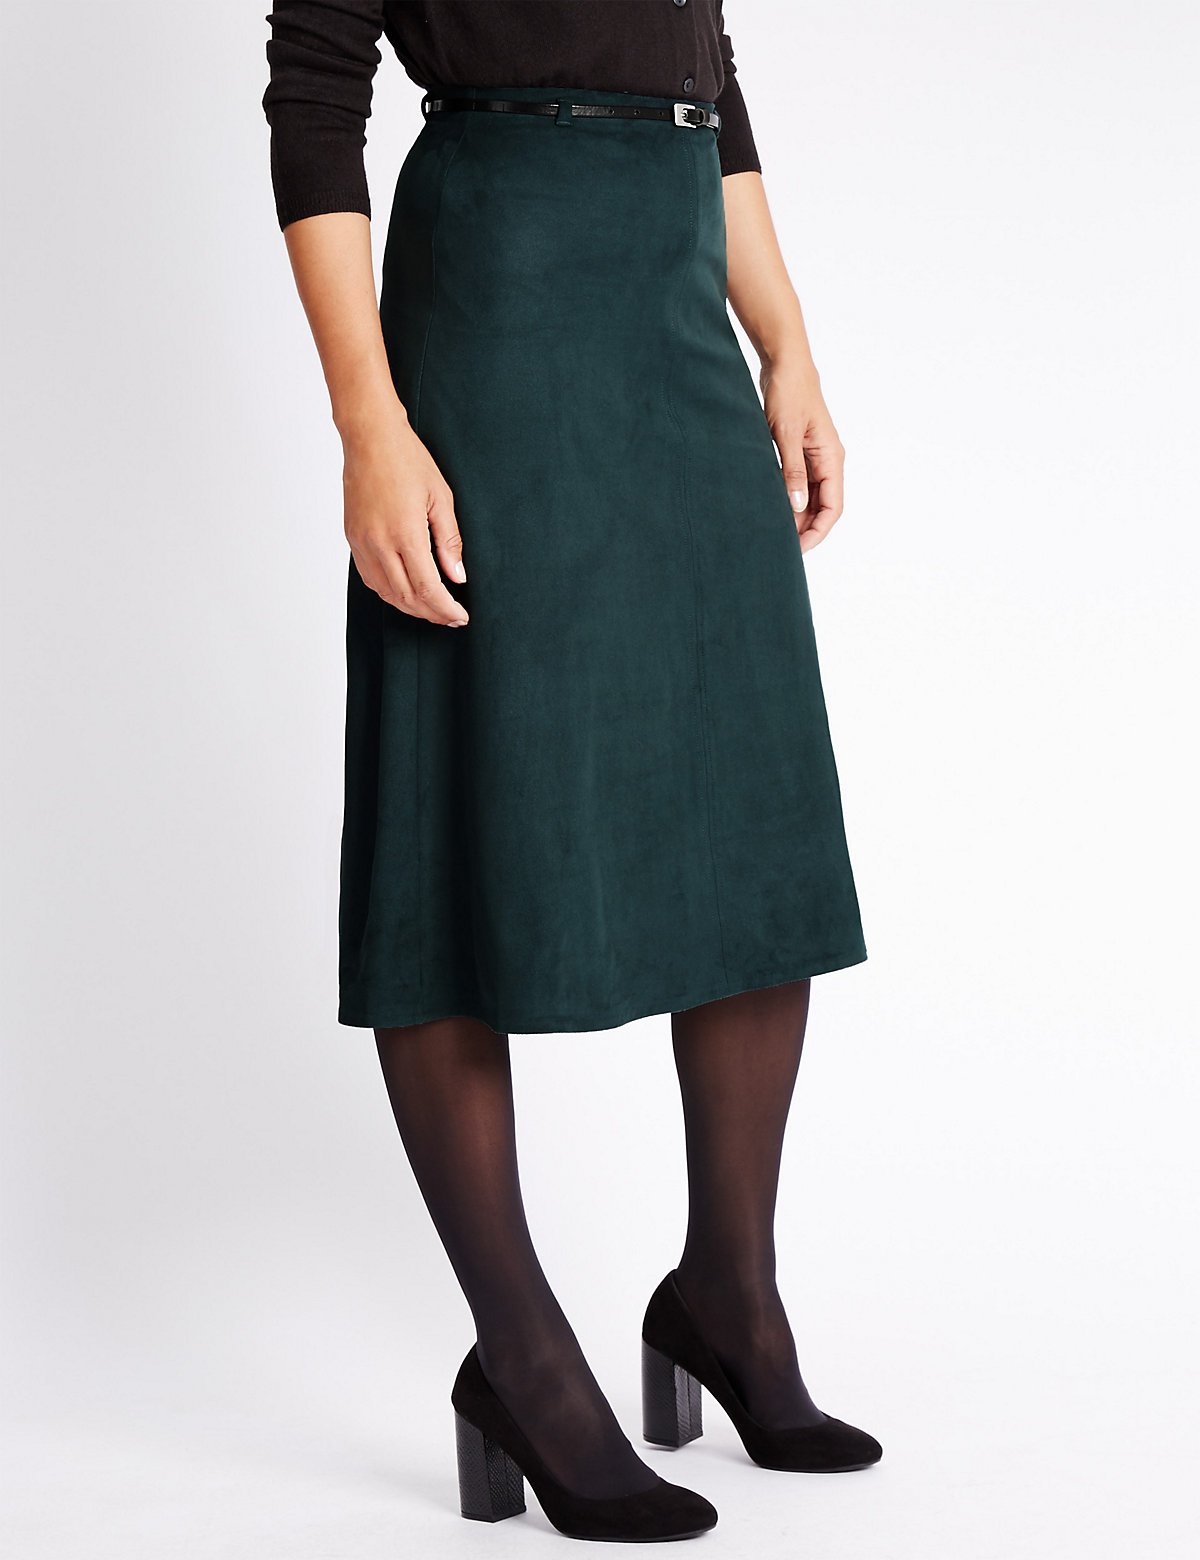 Classic Suedette A-Line Skirt with Belt